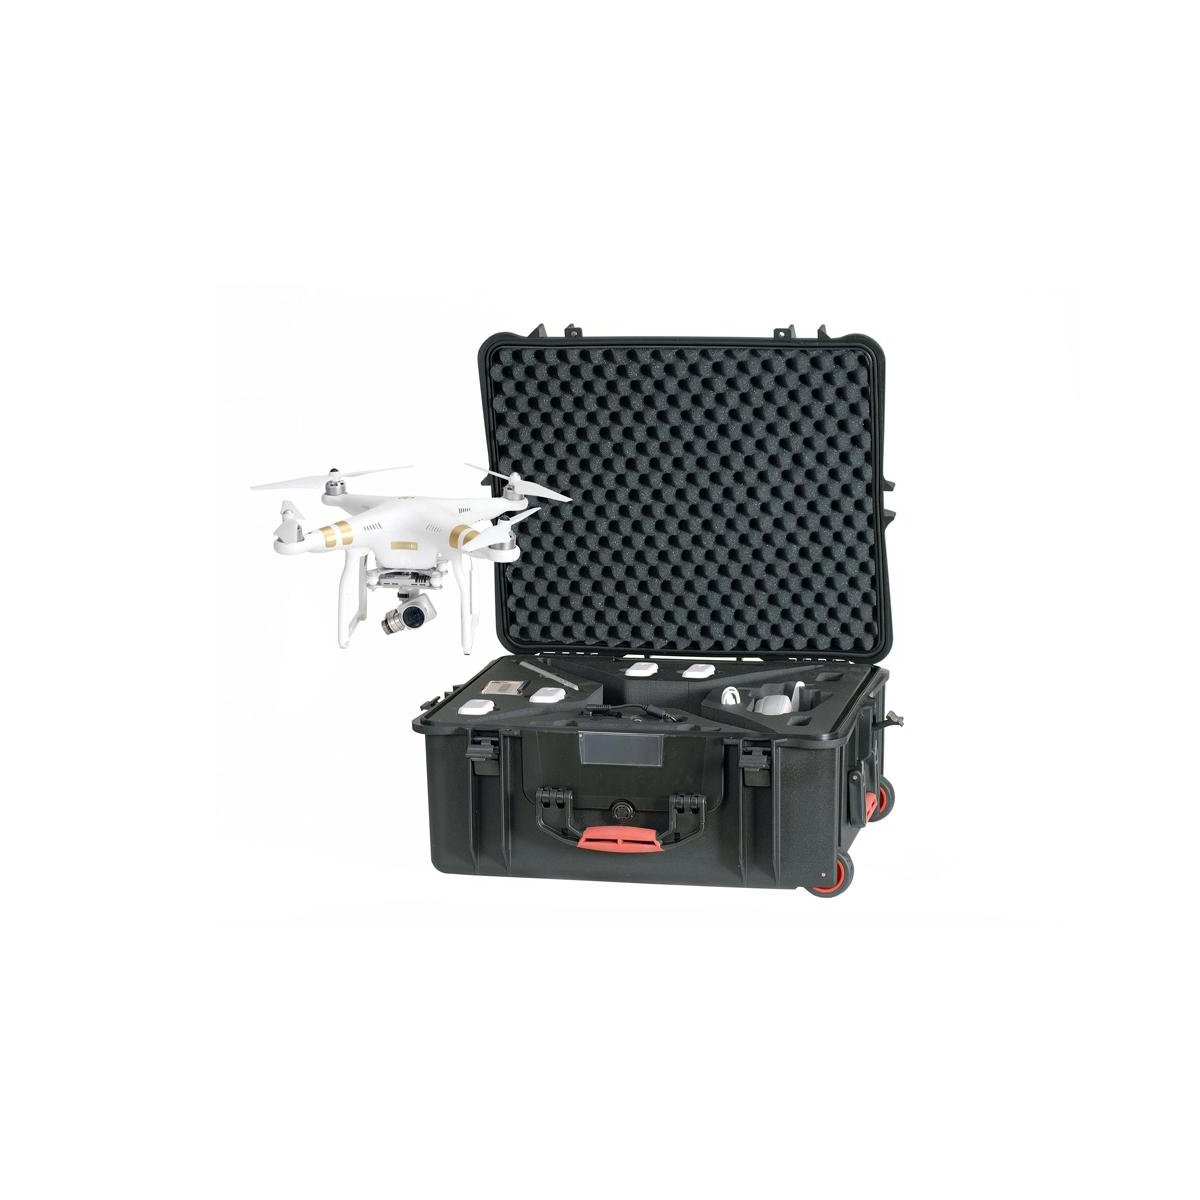 Drone Case HPRC2700W 01 For DJI Phantom 3 Pro And Advanced